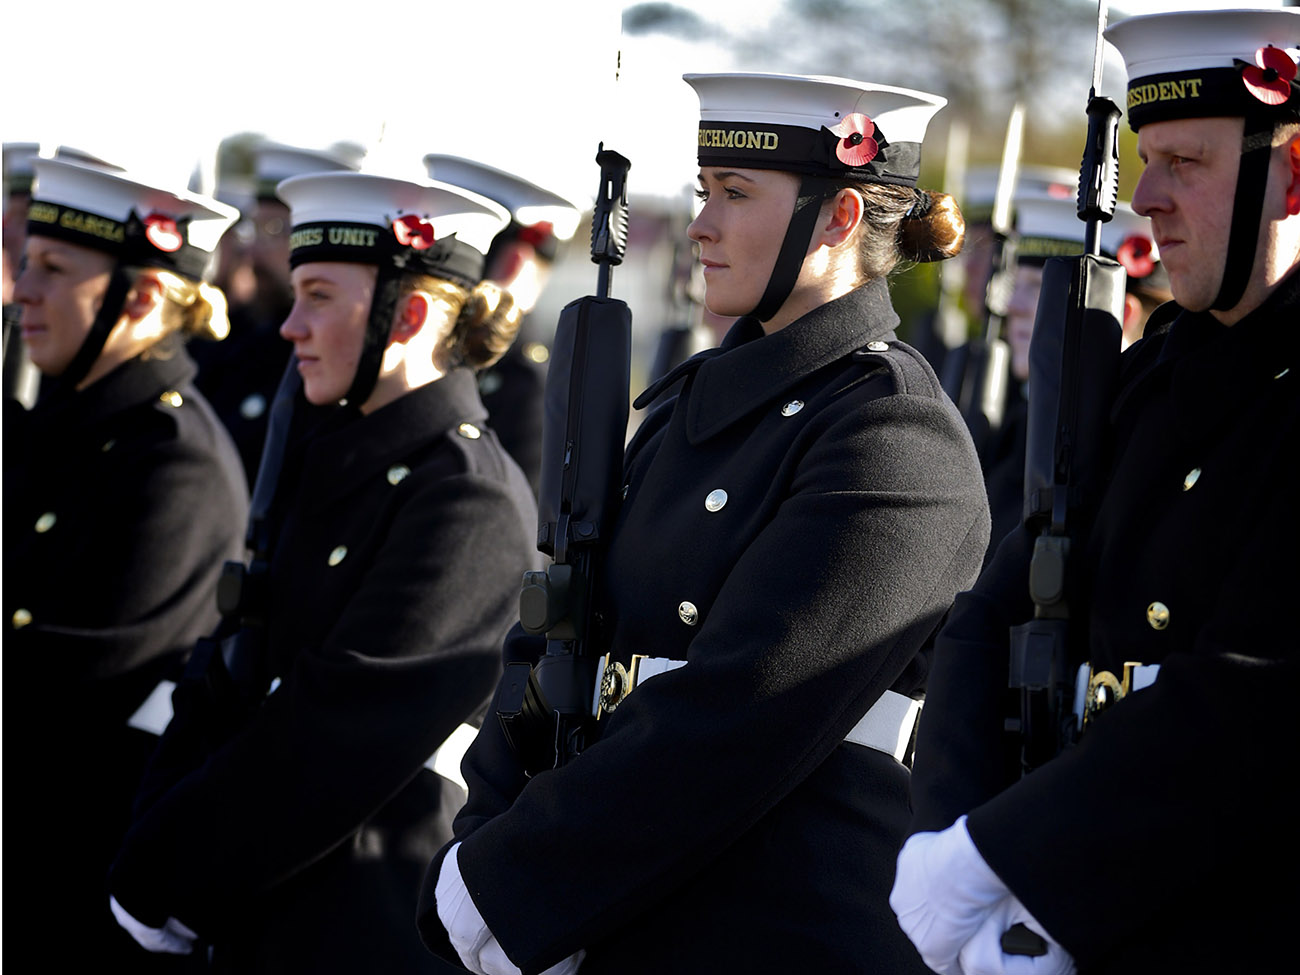 Royal Navy rehearse Remembrance drills ahead of Cenotaph ceremony